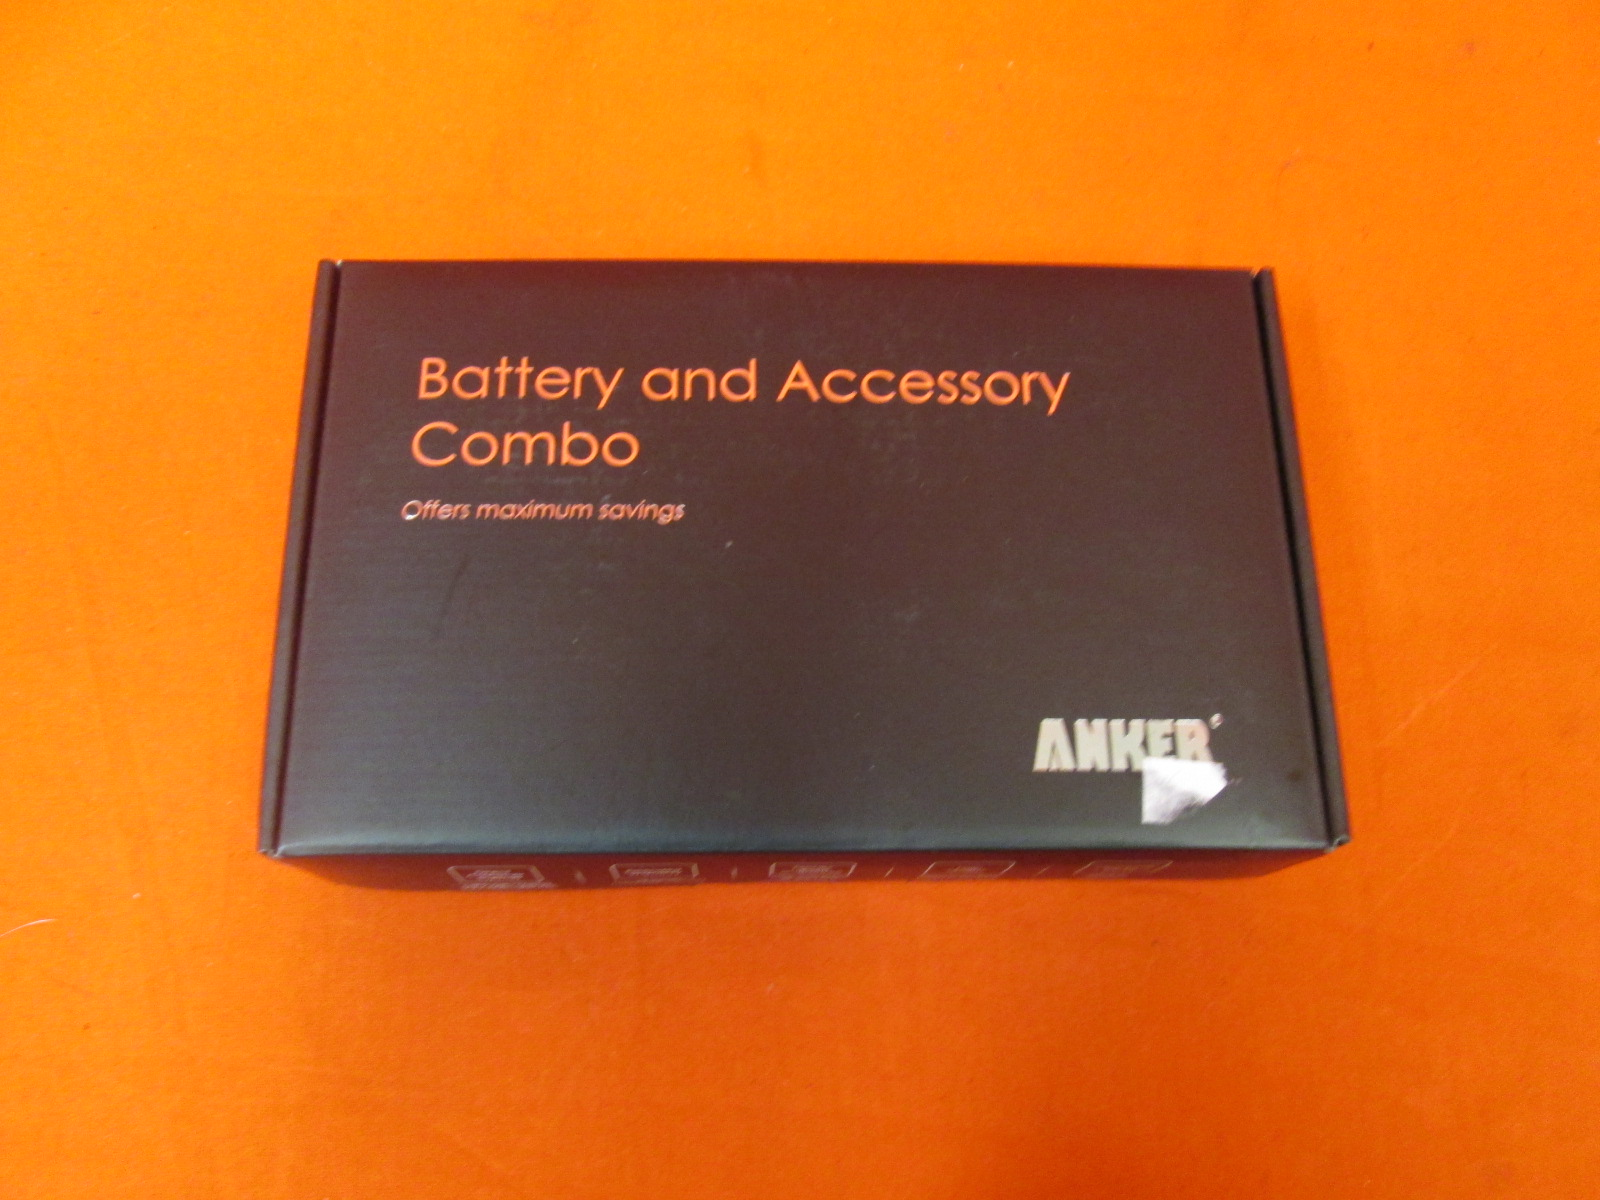 Anker Battery And Accessory Combo 2200 External Universal Wall Charger